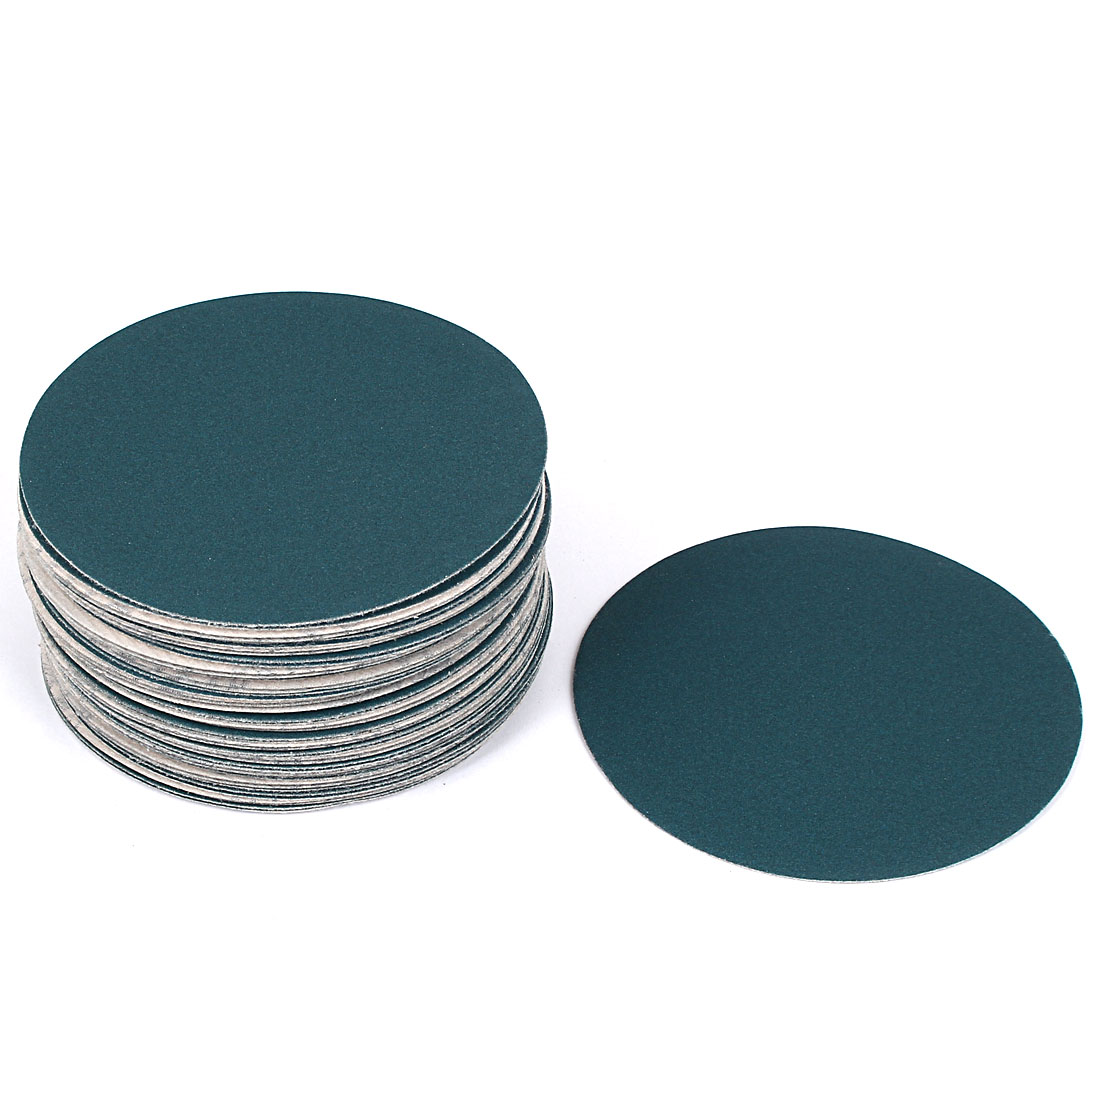 "5"" Sandpaper Auto Car Paint Polishing Sanding Disc Hook and Loop Fastener 240 Grit 50pcs"